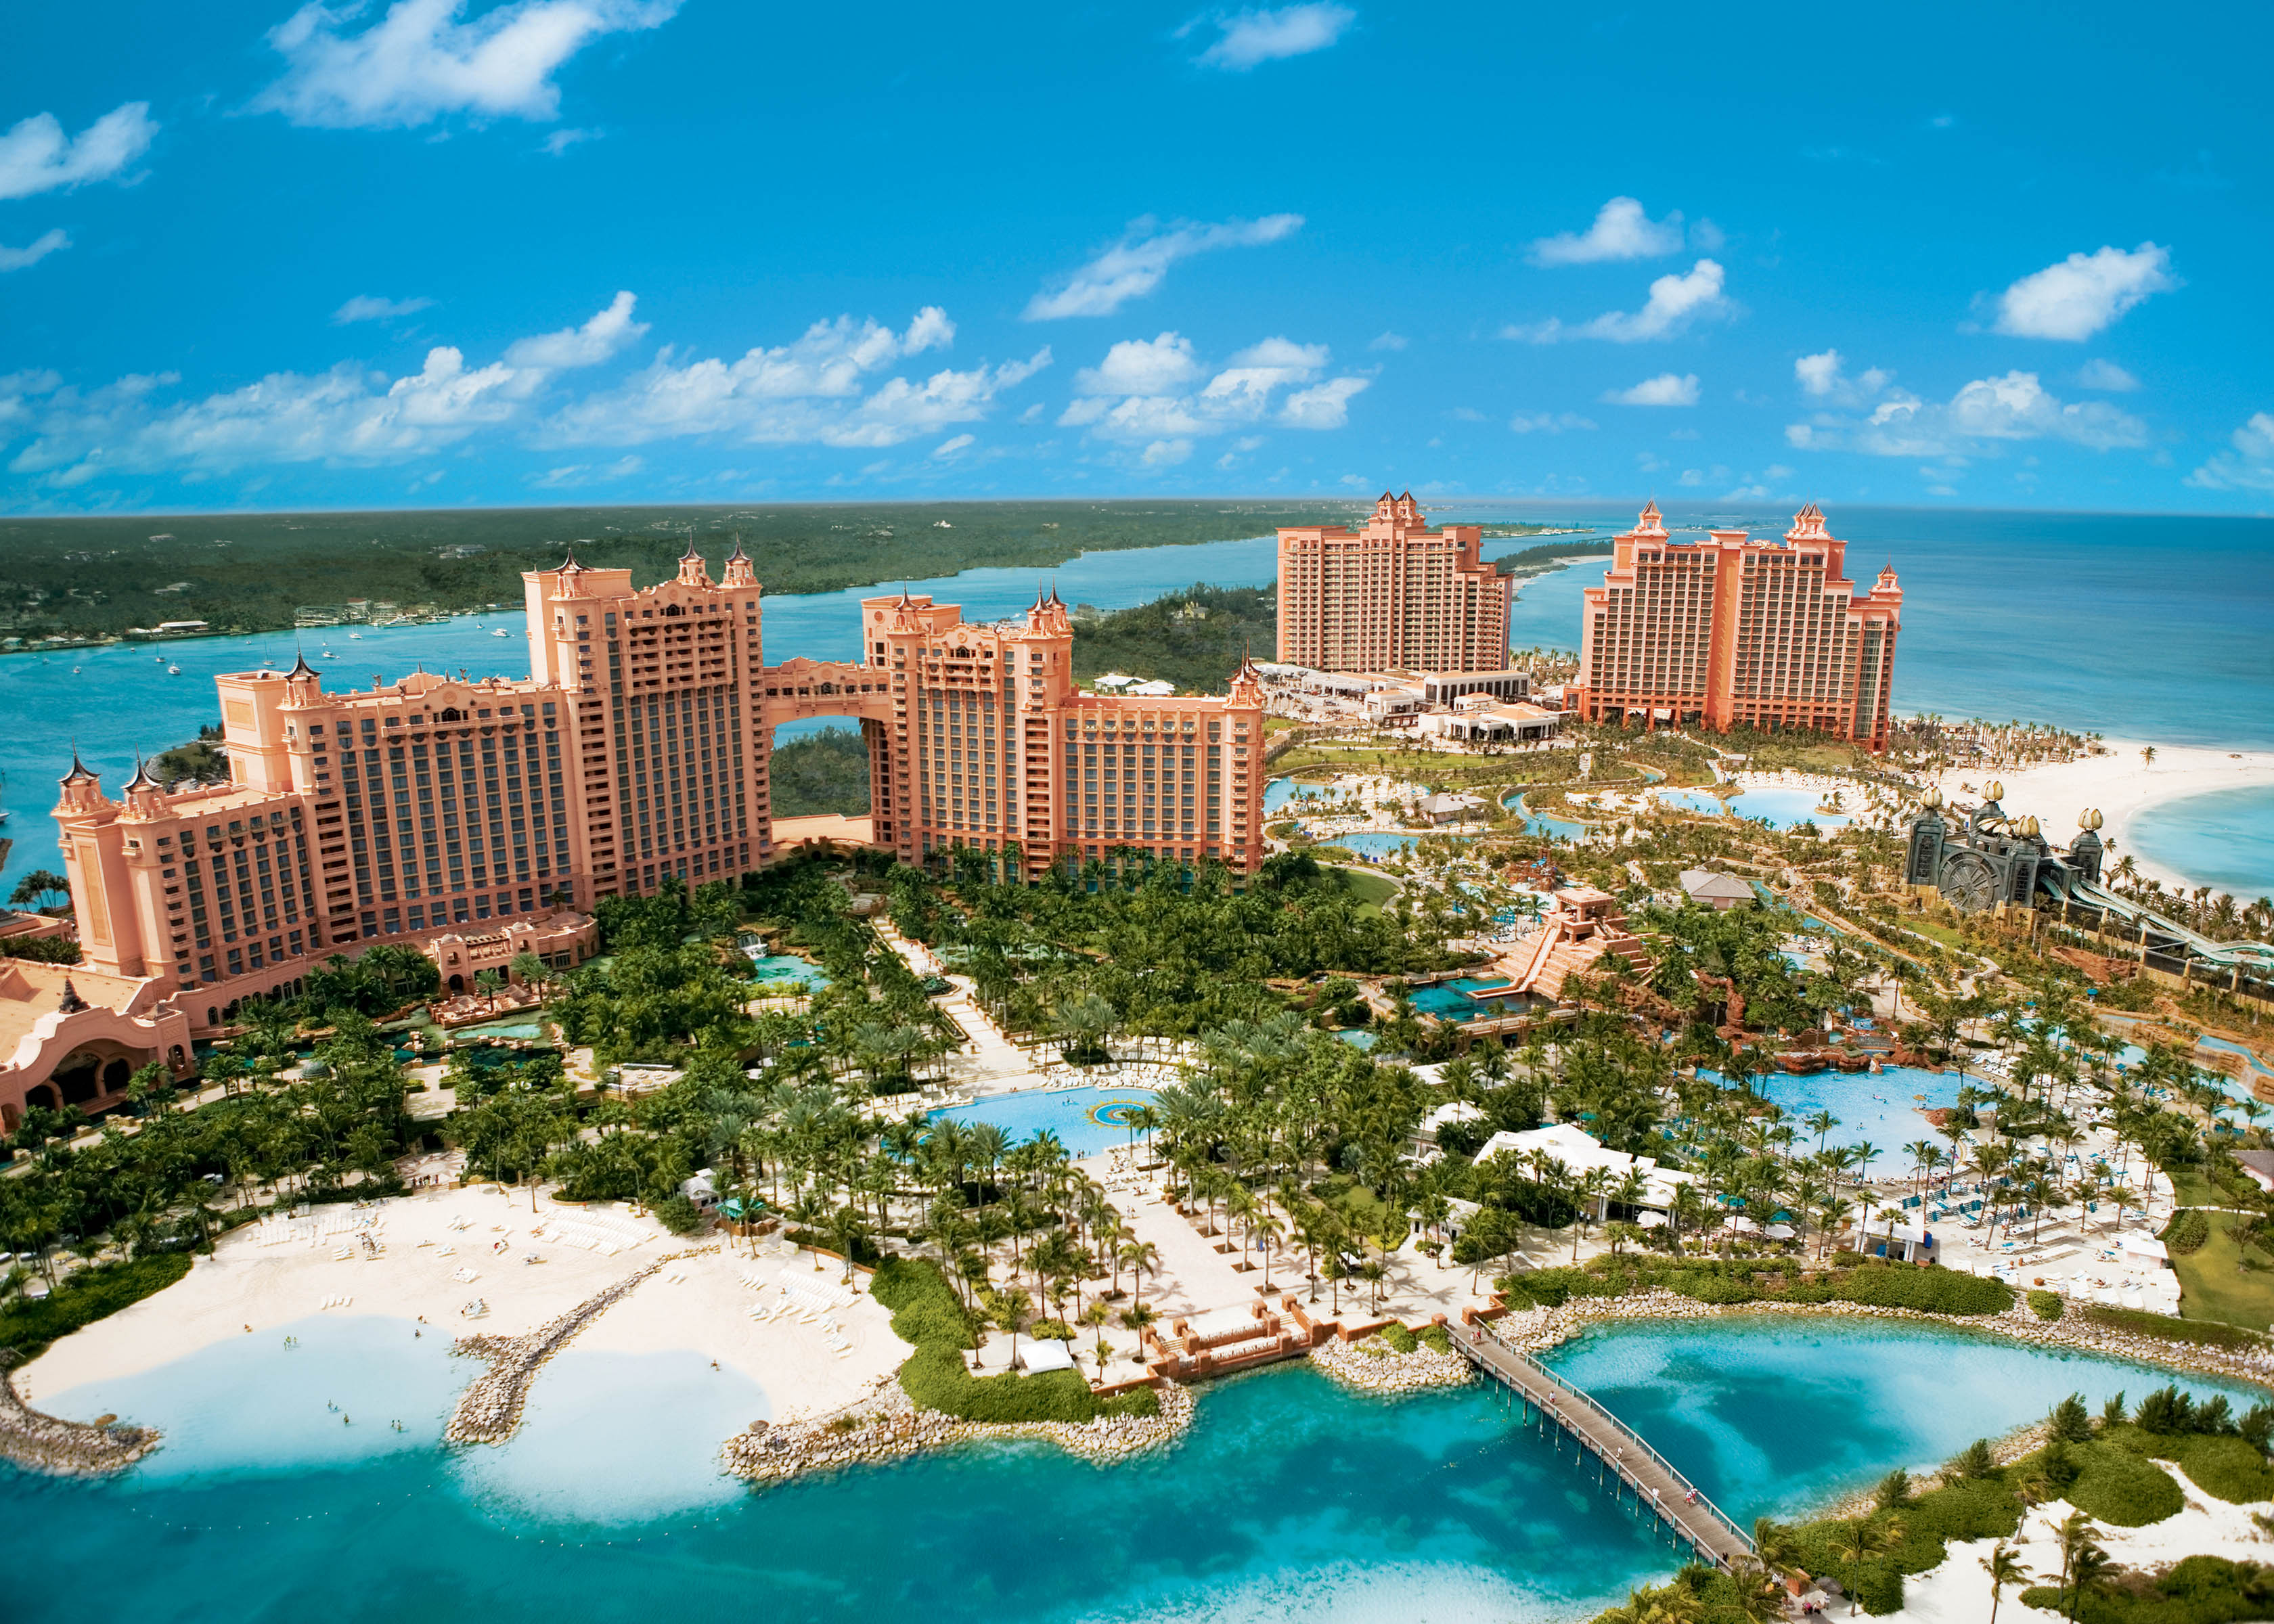 Best On Bahamas Great Things To Do In The Bahamas - Bahamas